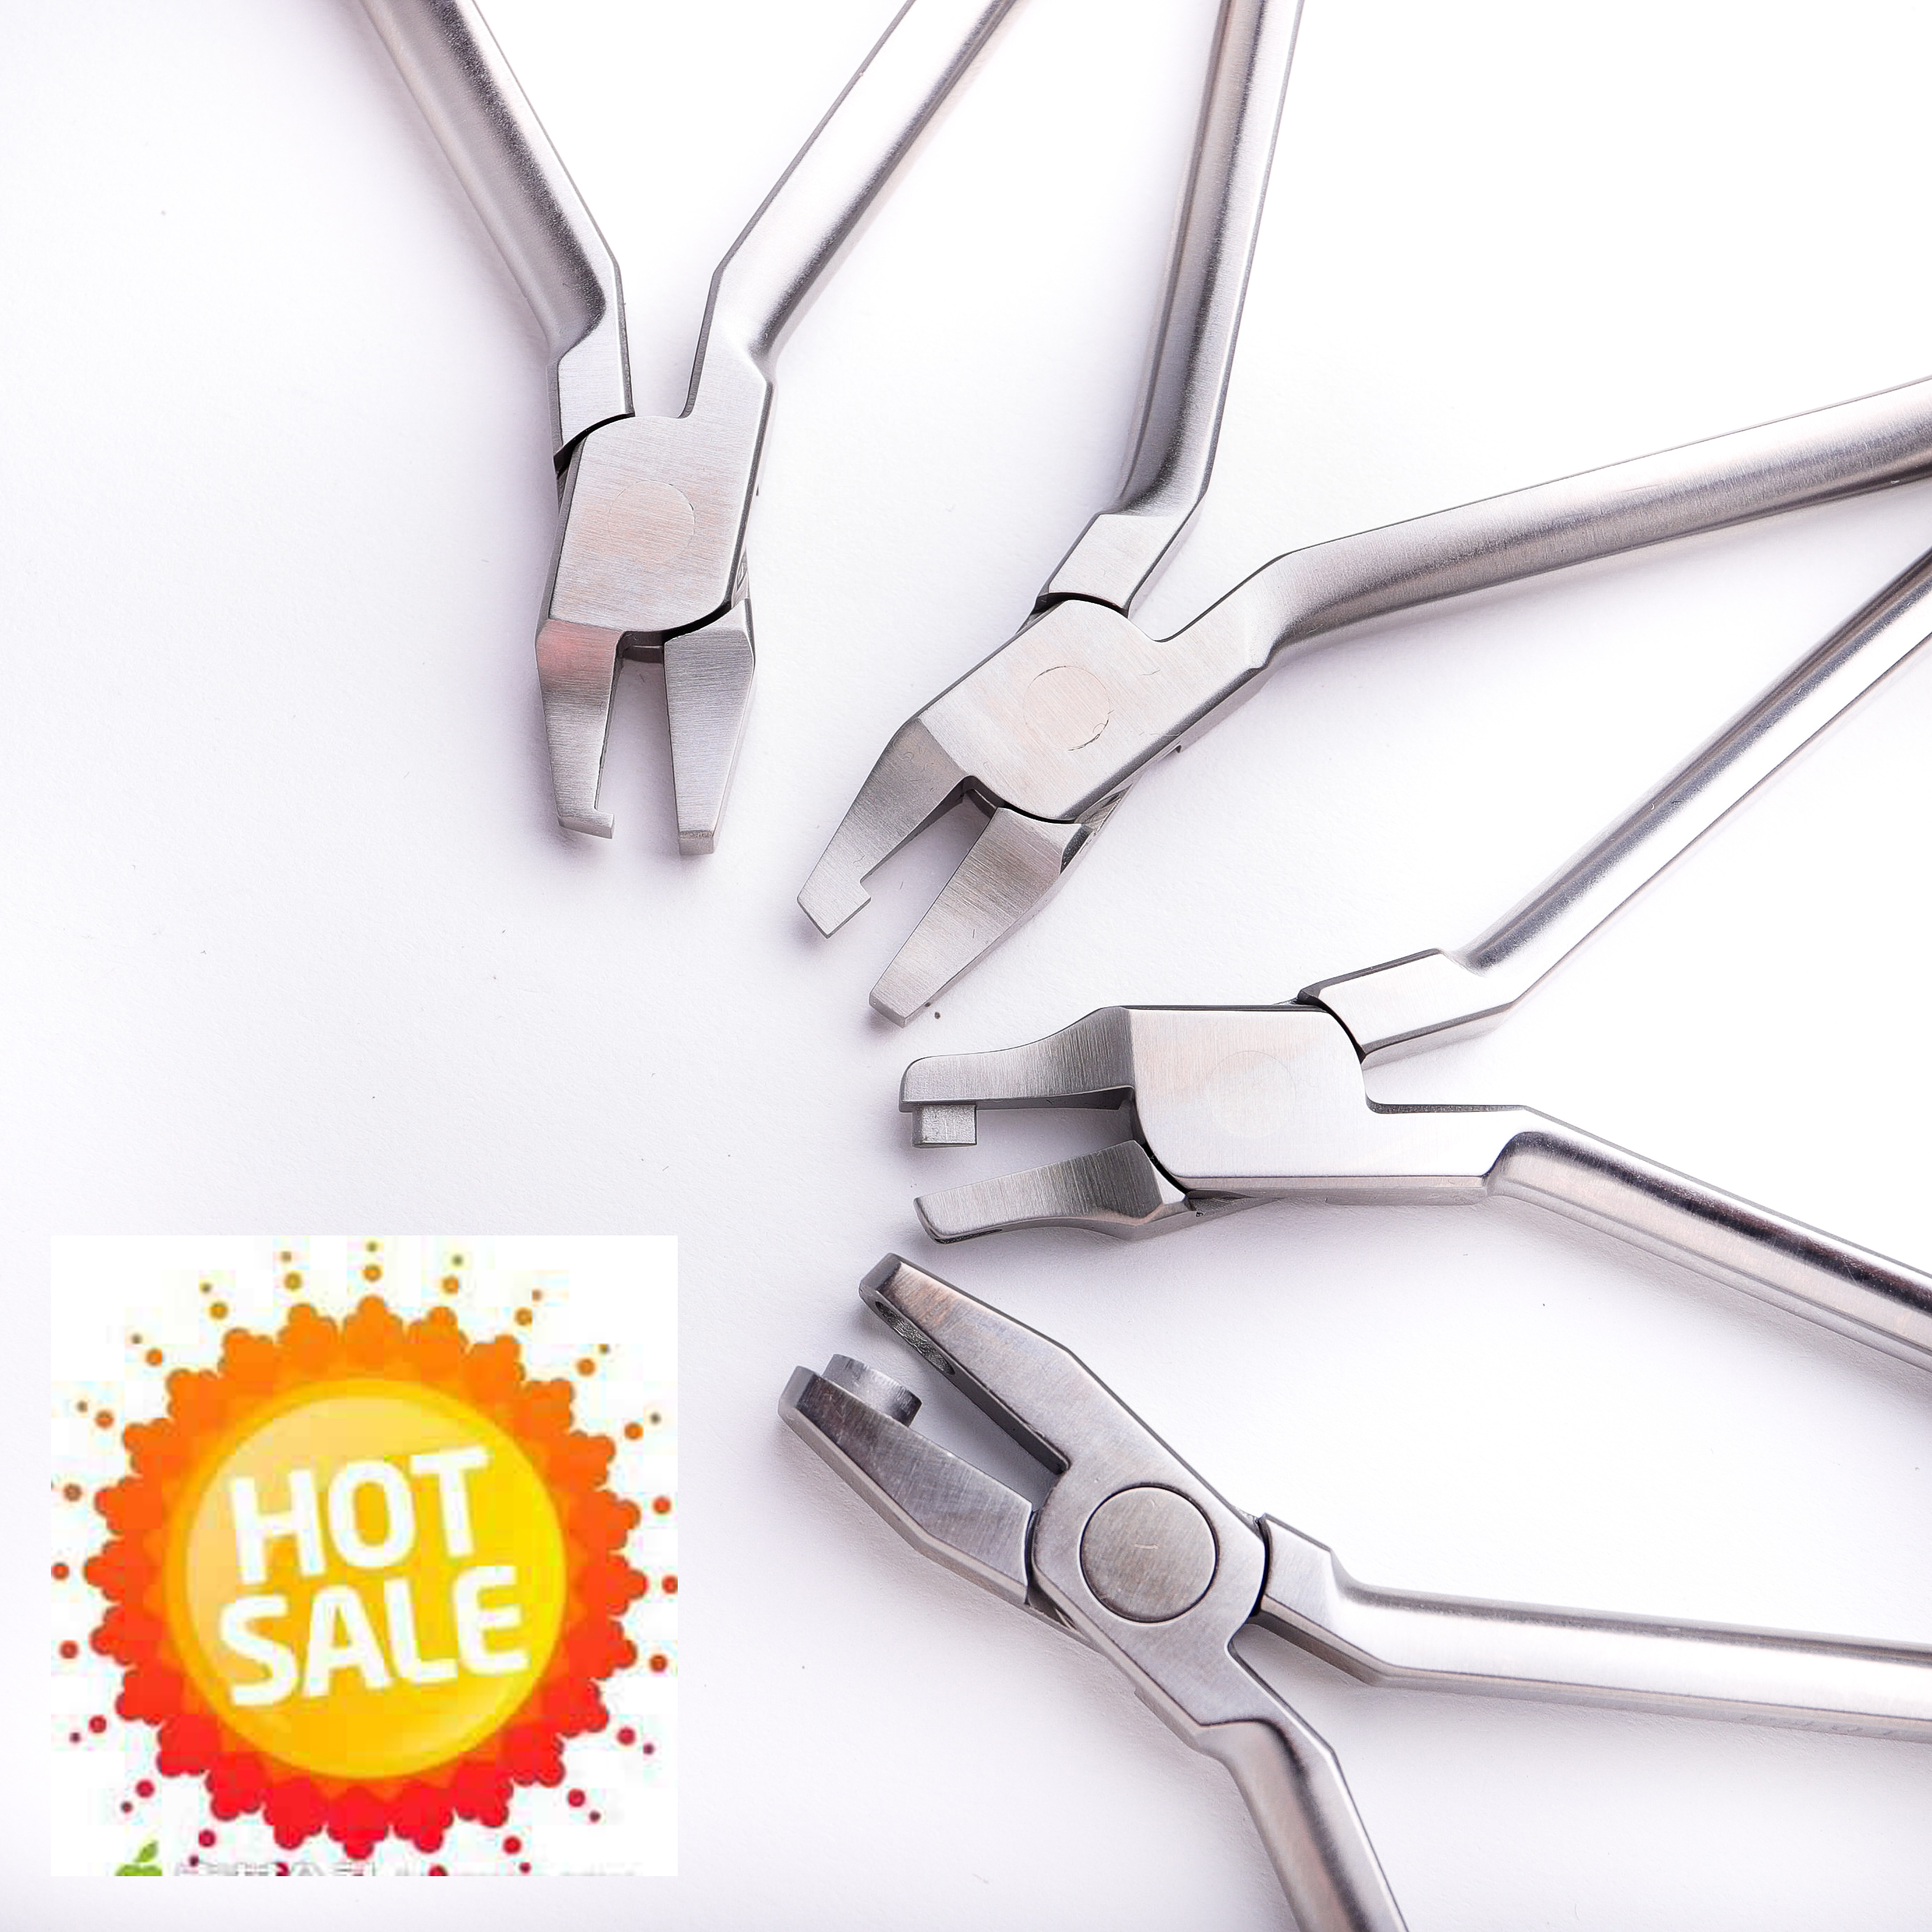 Dental orthodonticPliers CLEAR collection For Clear Aligners Treatment Invisalign